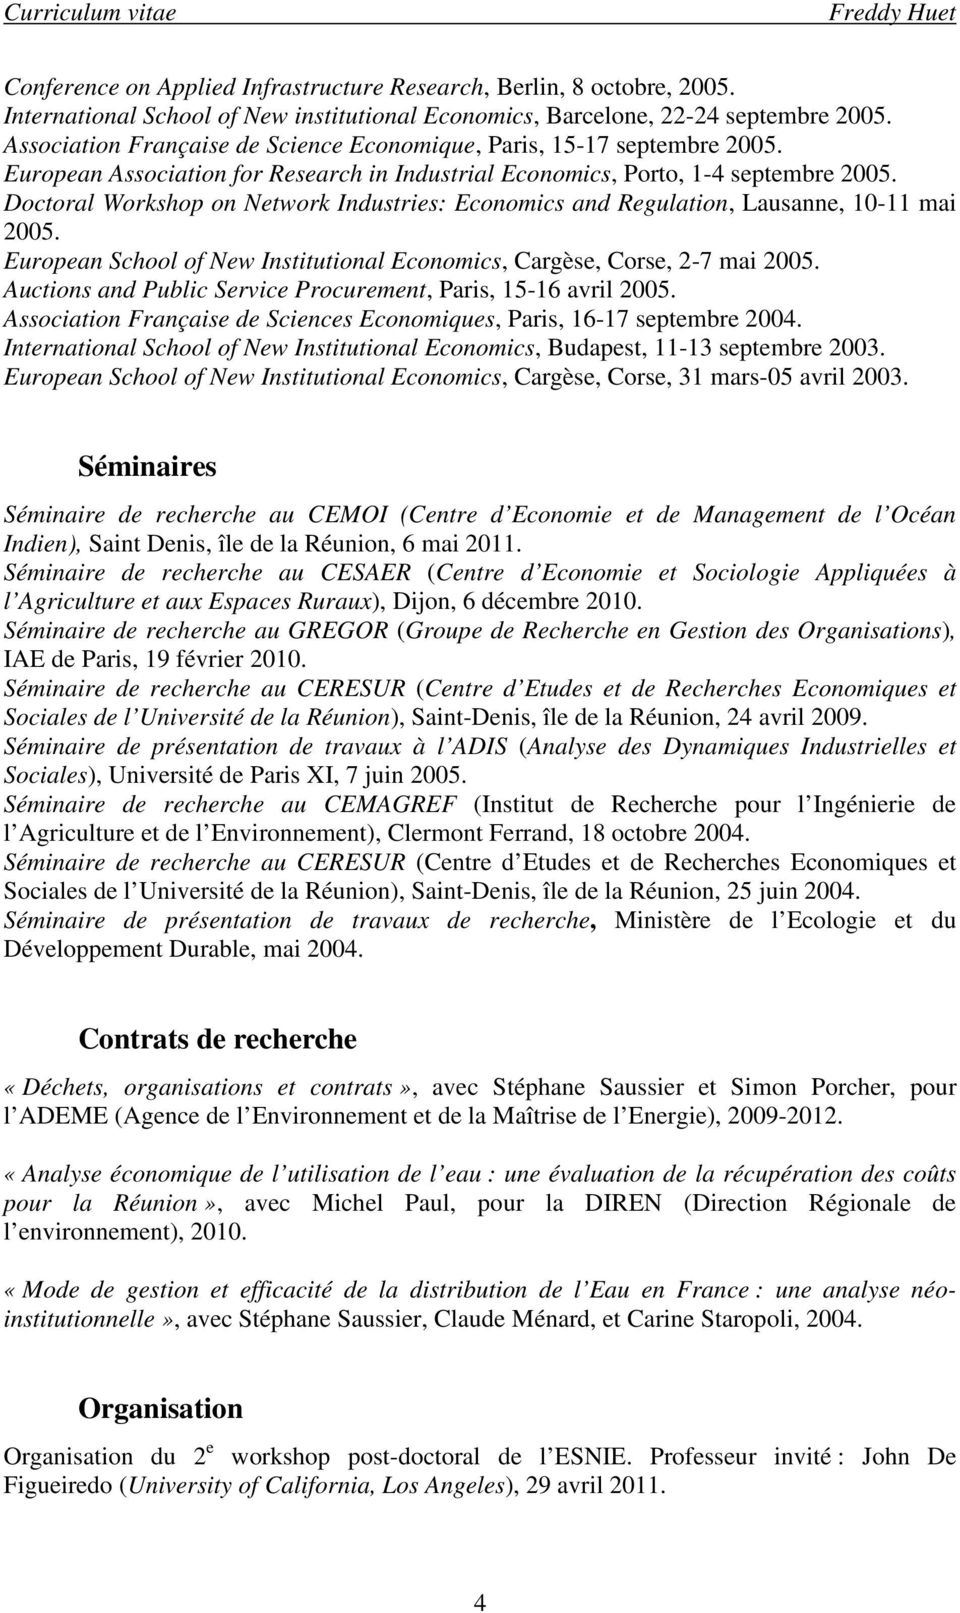 Doctoral Workshop on Network Industries: Economics and Regulation, Lausanne, 10-11 mai 2005. European School of New Institutional Economics, Cargèse, Corse, 2-7 mai 2005.